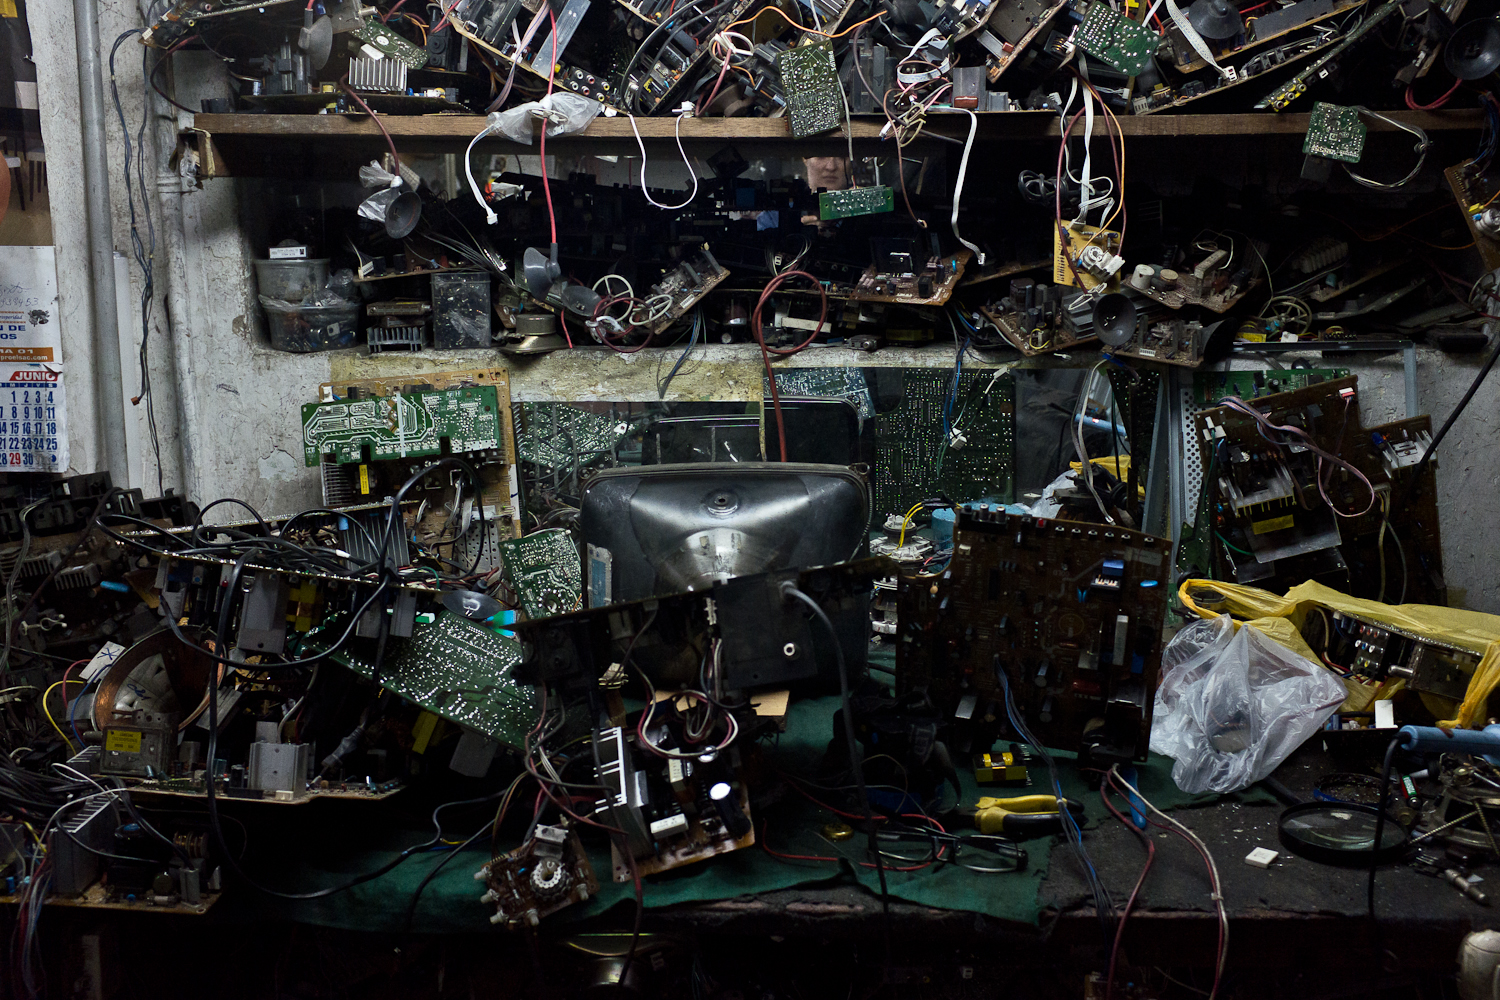 In Victor Arevalo's shop, it costs about $8 USD to repair a CRT TV. Repair shops purchase or hoard components from used TVs to fix their customers' products. Used parts are no longer available from the original manufacturer. Images such as these are often used to demonstrate the environmental hazards of electronic scrap flows, but closer inspection confirms that the space is, well, just messy. Though the components are strewn everywhere, they are simply inventory.